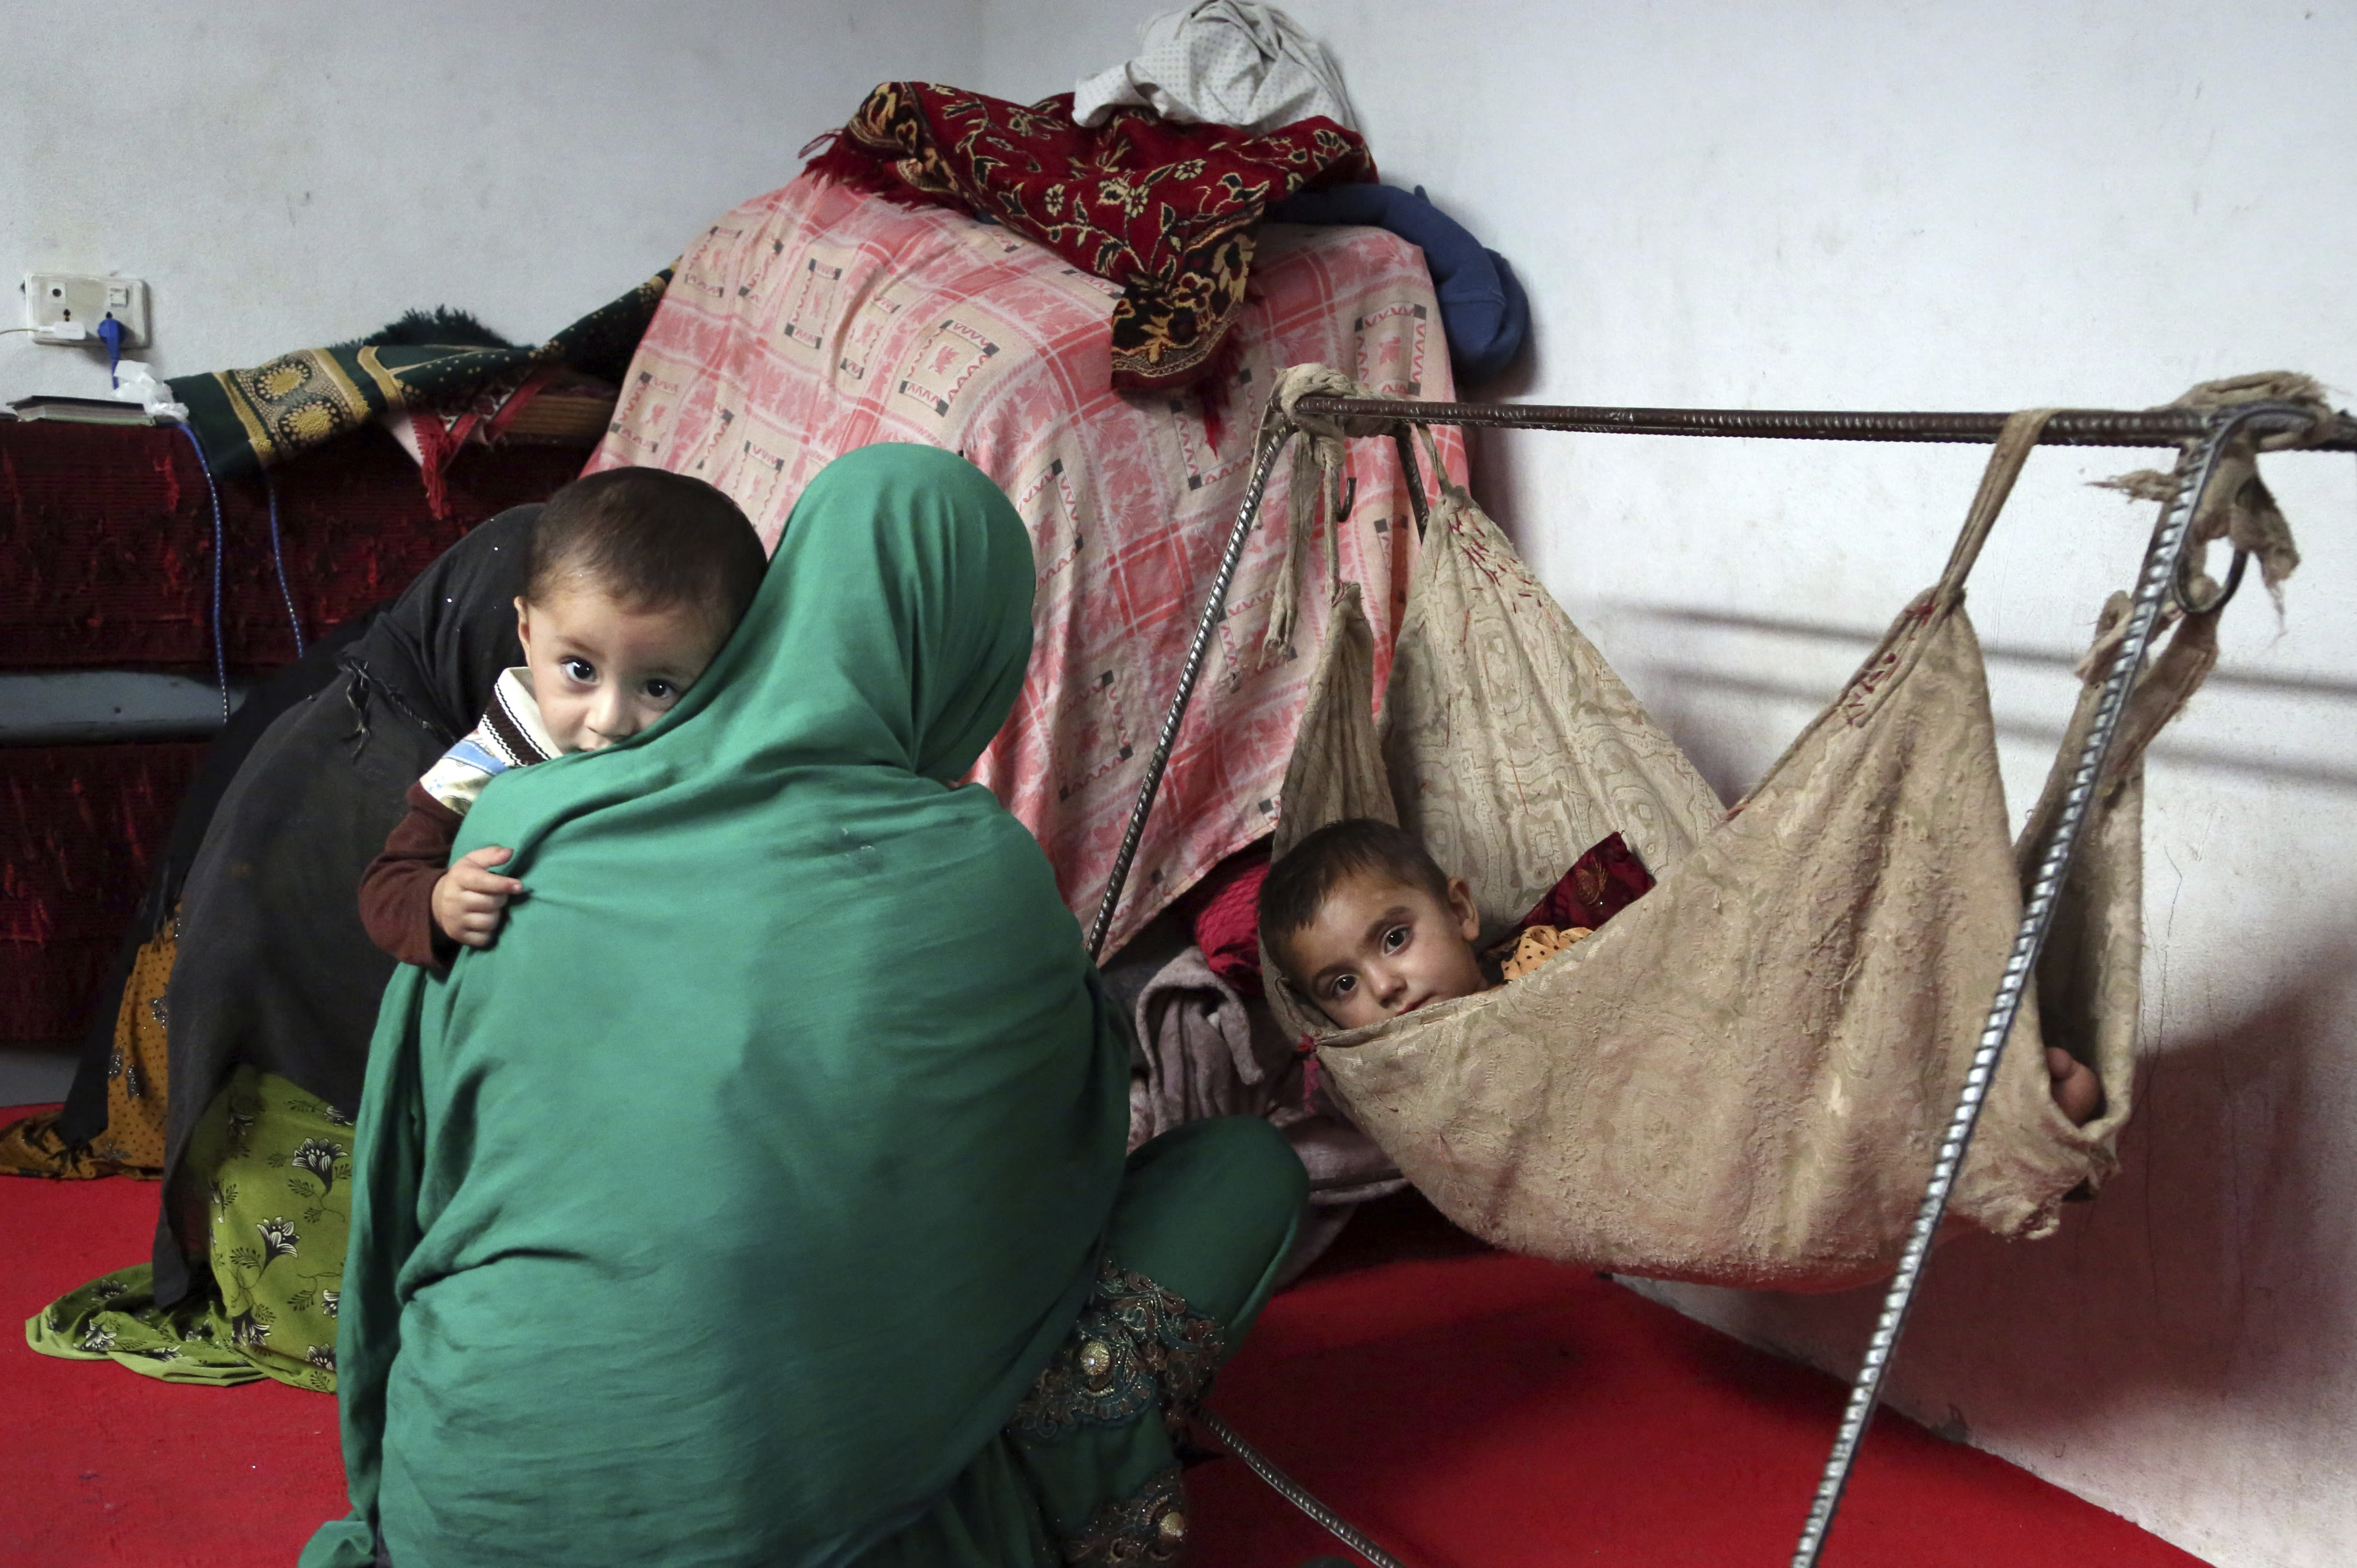 In this Thursday, May 30, 2019 photo, members of Farmanullah Shirzad's family who fled their village in Nangarhar province in late April as Islamic State group fighters swept through the area, are seen at their temporary home in the city of Jalalabad east of Kabul, Afghanistan. The Islamic State group has lost its caliphate in Syria and Iraq, but in the forbidding mountains of northeastern Afghanistan the group is expanding its footprint, recruiting new fighters and plotting attacks in the United States and other Western countries. (AP Photo/Rahmat Gul)